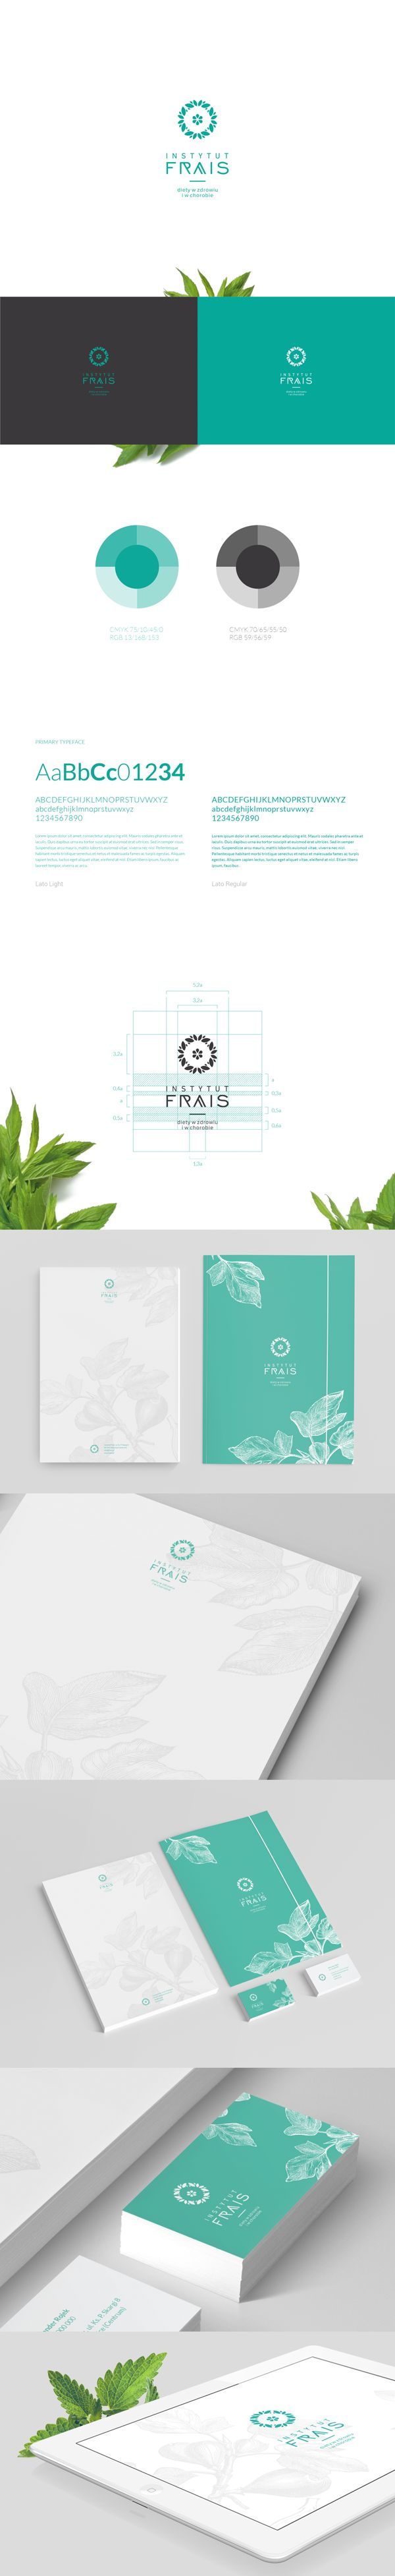 Frais is a dietary studio from Poland. The brand name comes from French and means fresh. Our goal was to design logo and prints.